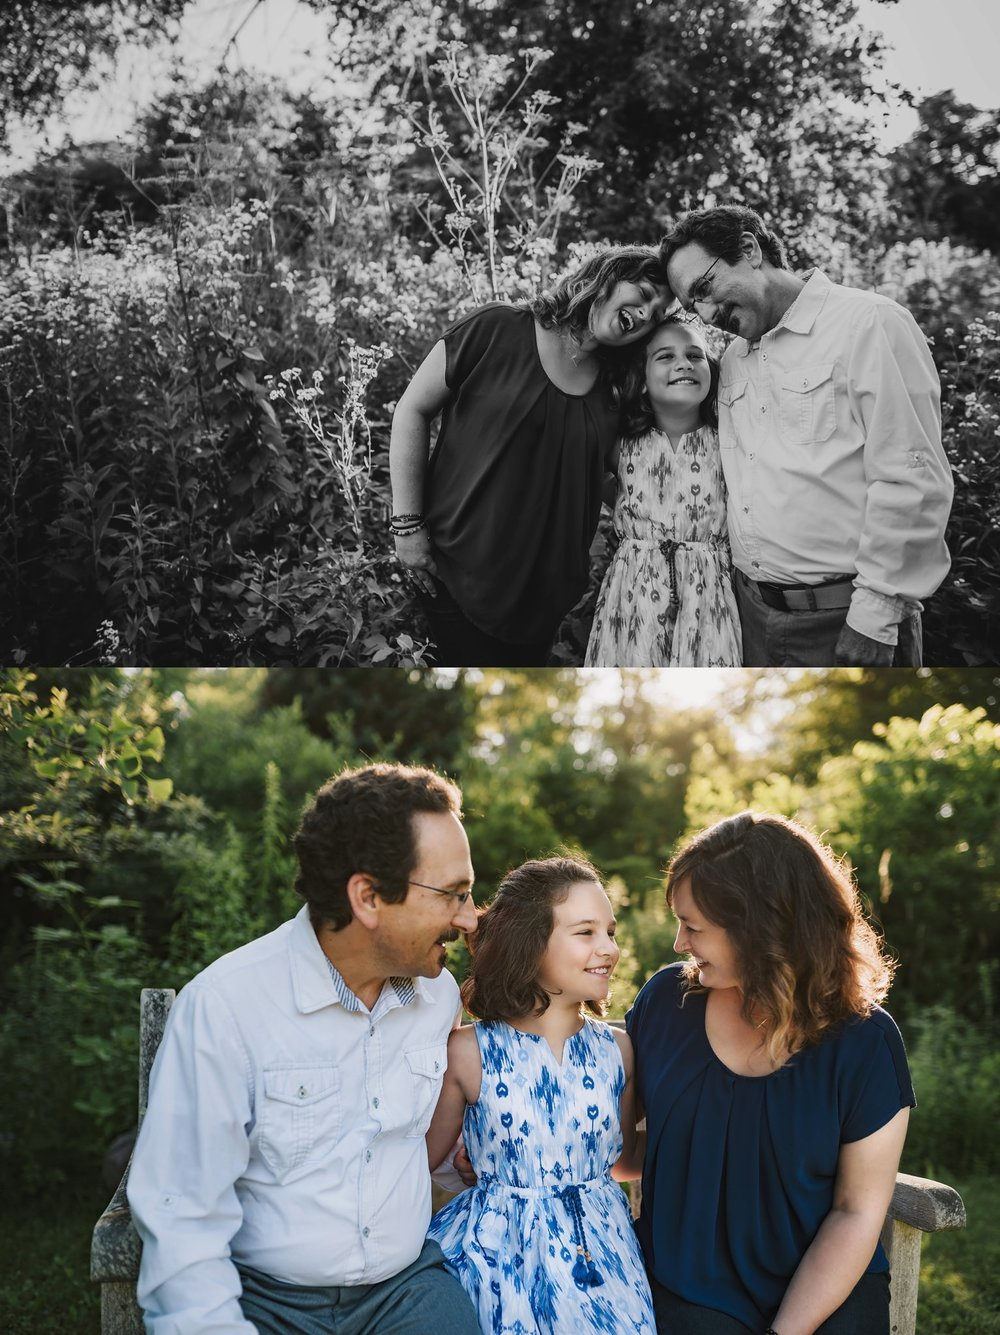 Langer_June_2018-170_Award_Winning_Boston_Massachusetts_Family_Portrait_Photographer_Asher_and_Oak_Photography.jpg